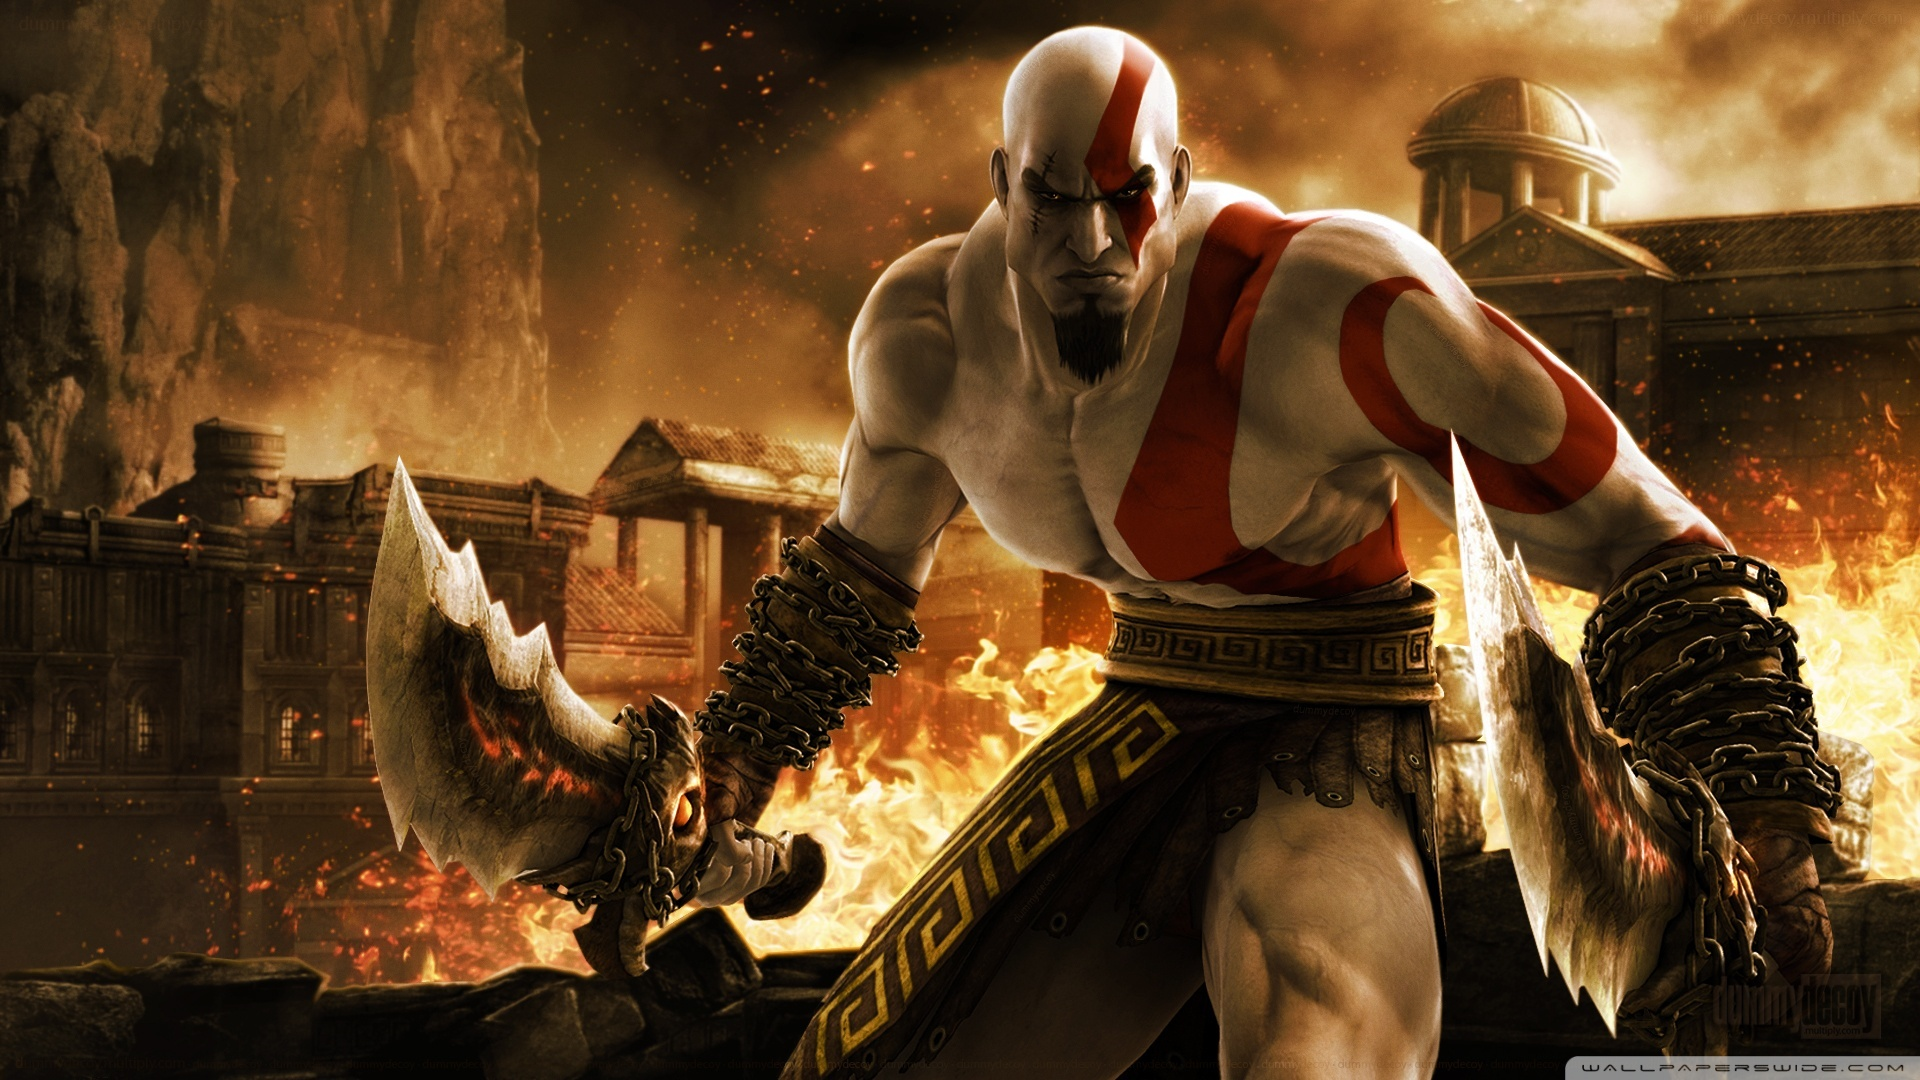 Download Free WallpaperKratos   God War